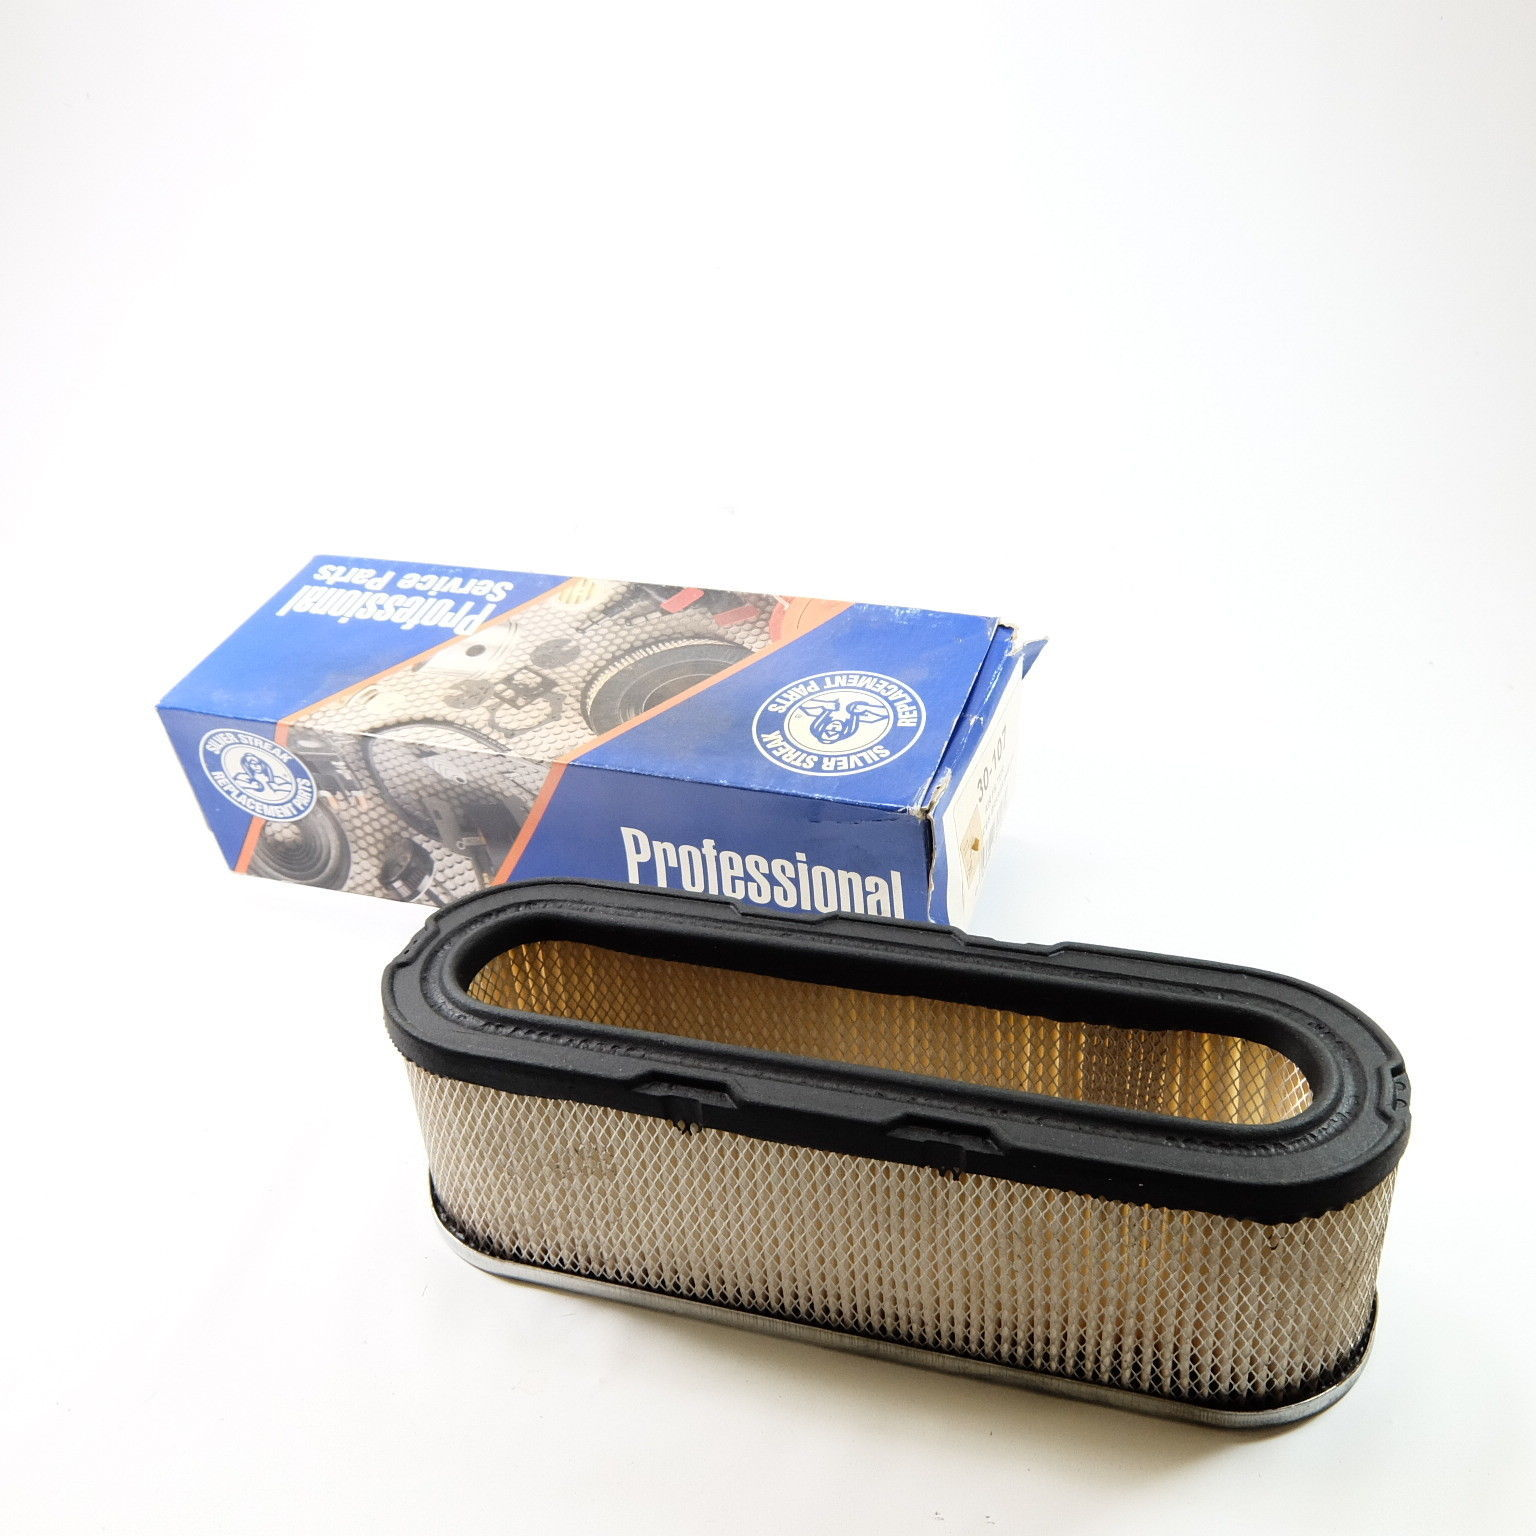 New Silver Streak 30-107 Air Filter replaces Briggs & Stratton 451519 - $7.00